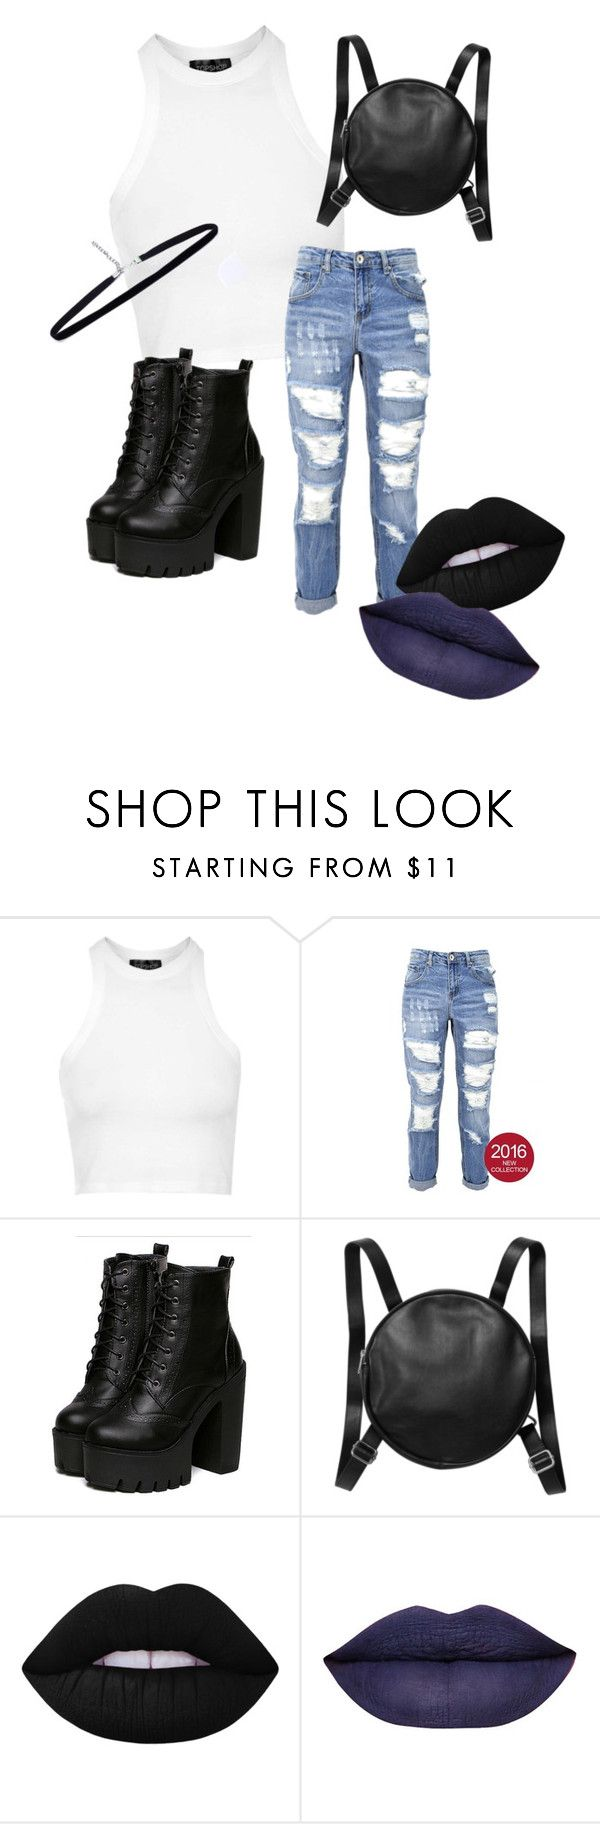 90s baby by lauraa-jane on Polyvore featuring moda, Topshop, Monki, Lime Crime, vintage, women's clothing, women's fashion, women, female and woman